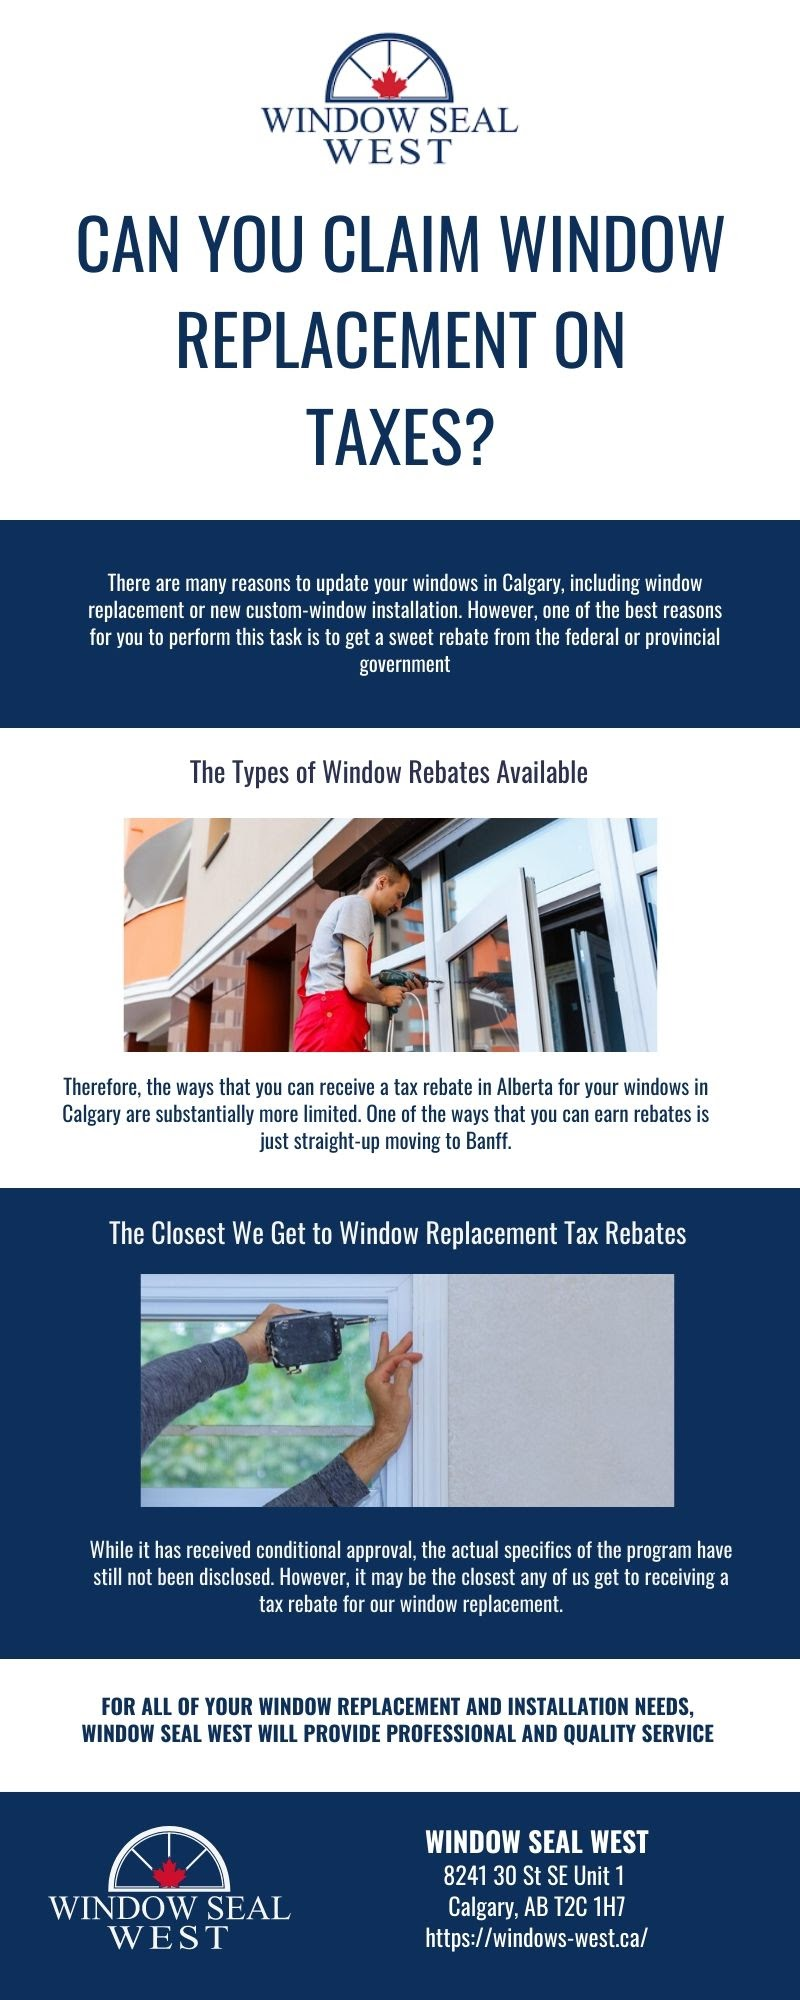 Can You Claim Window Replacement on Taxes? #infographic